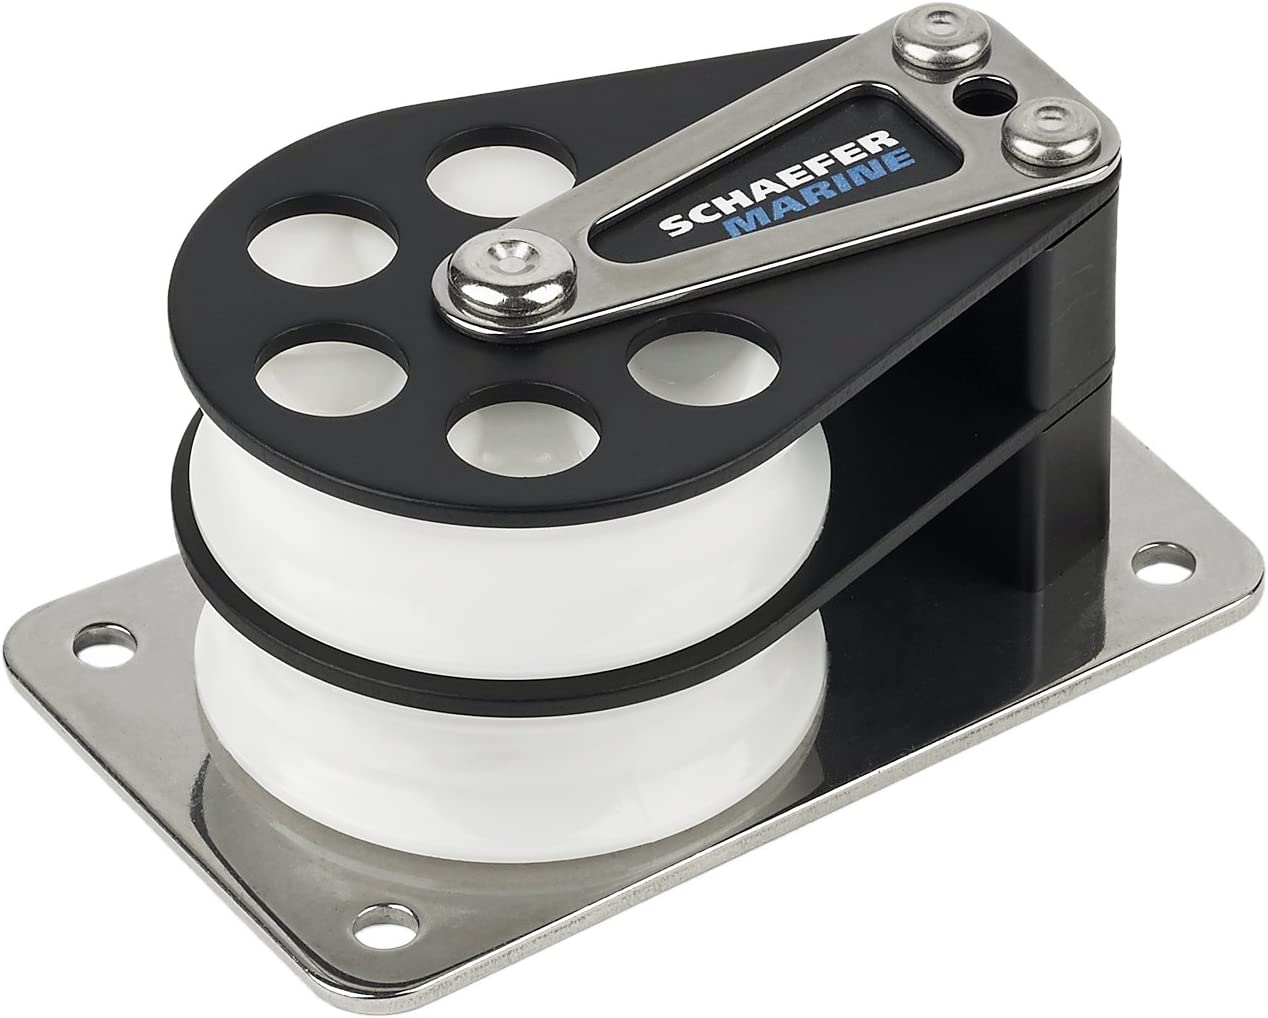 Schaefer 5 Series Double Cheek Block with Aluminum Cheek Stainless Steel Base and Aluminum Sheave